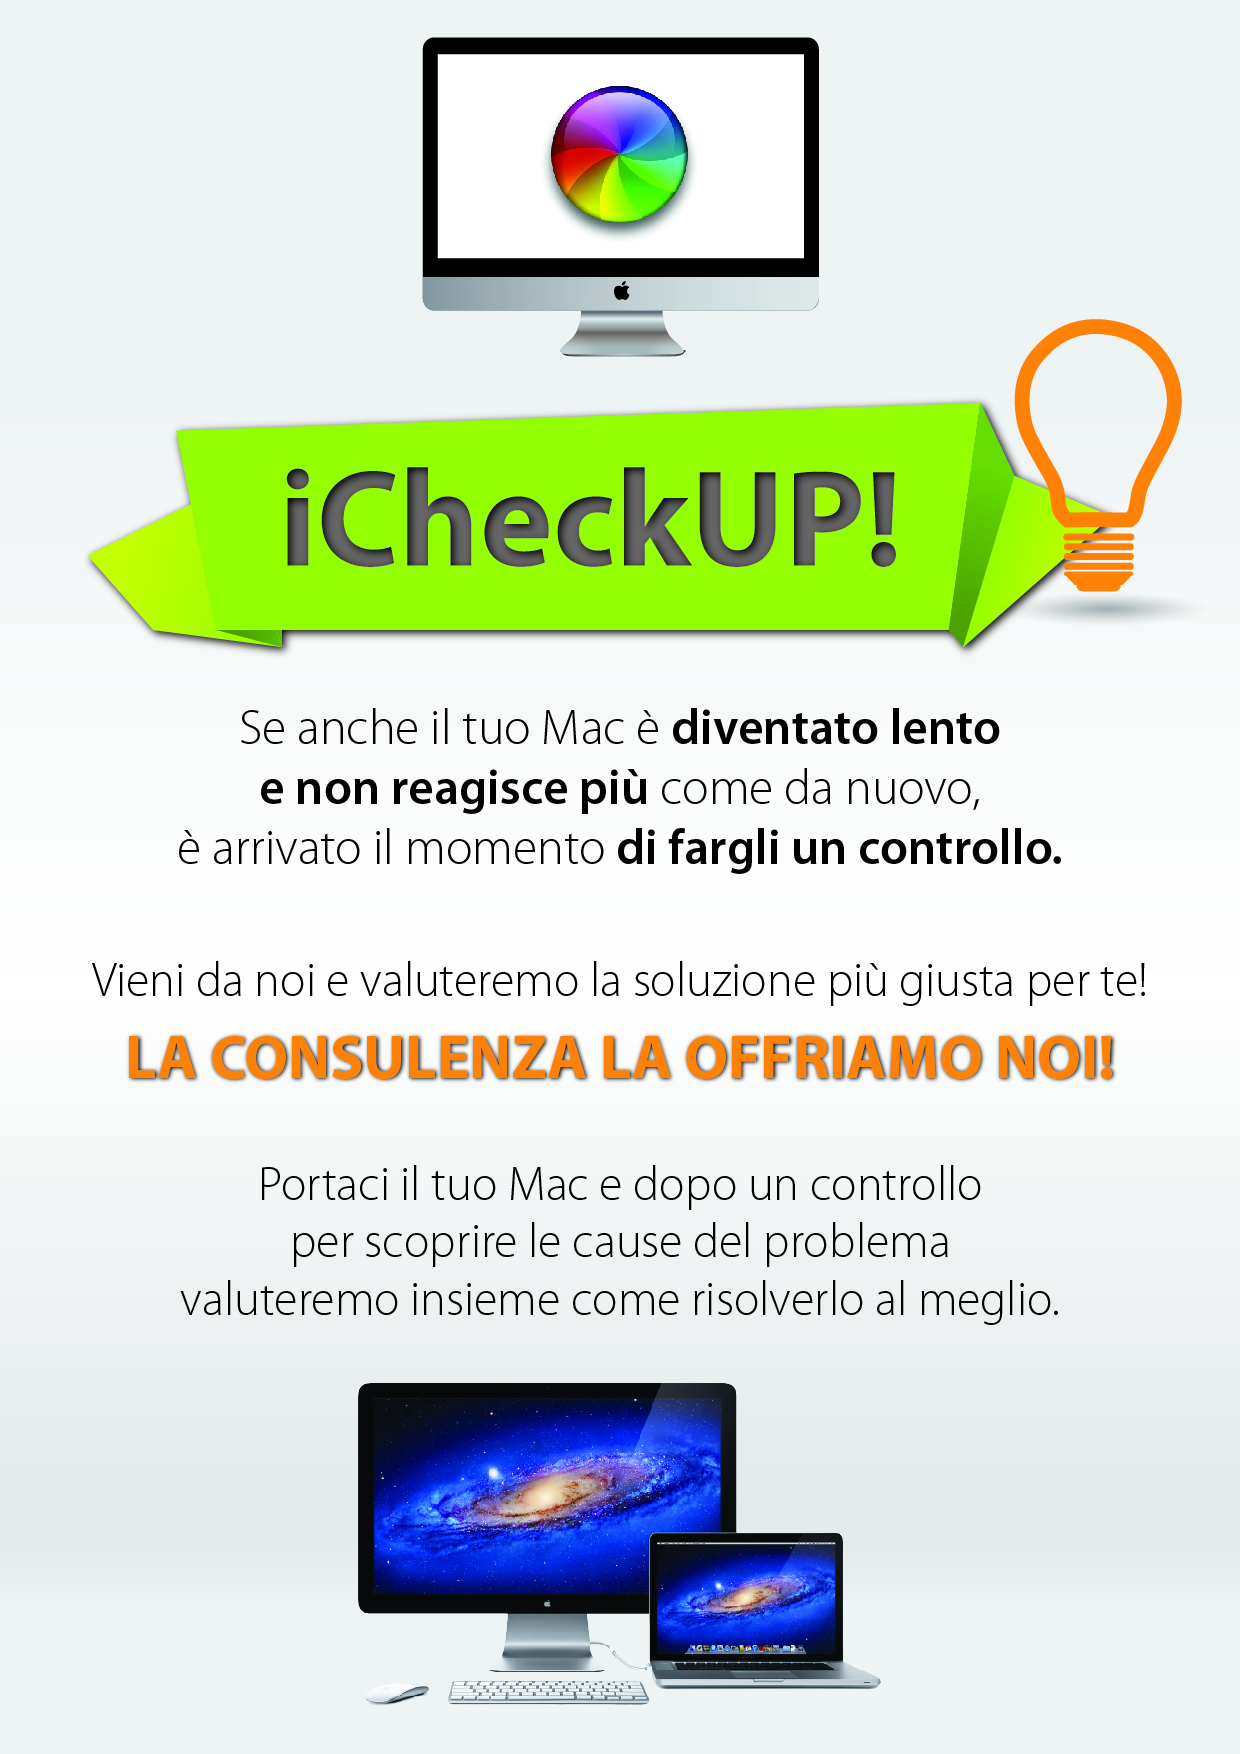 checkup-mac-imac-apple-macbook